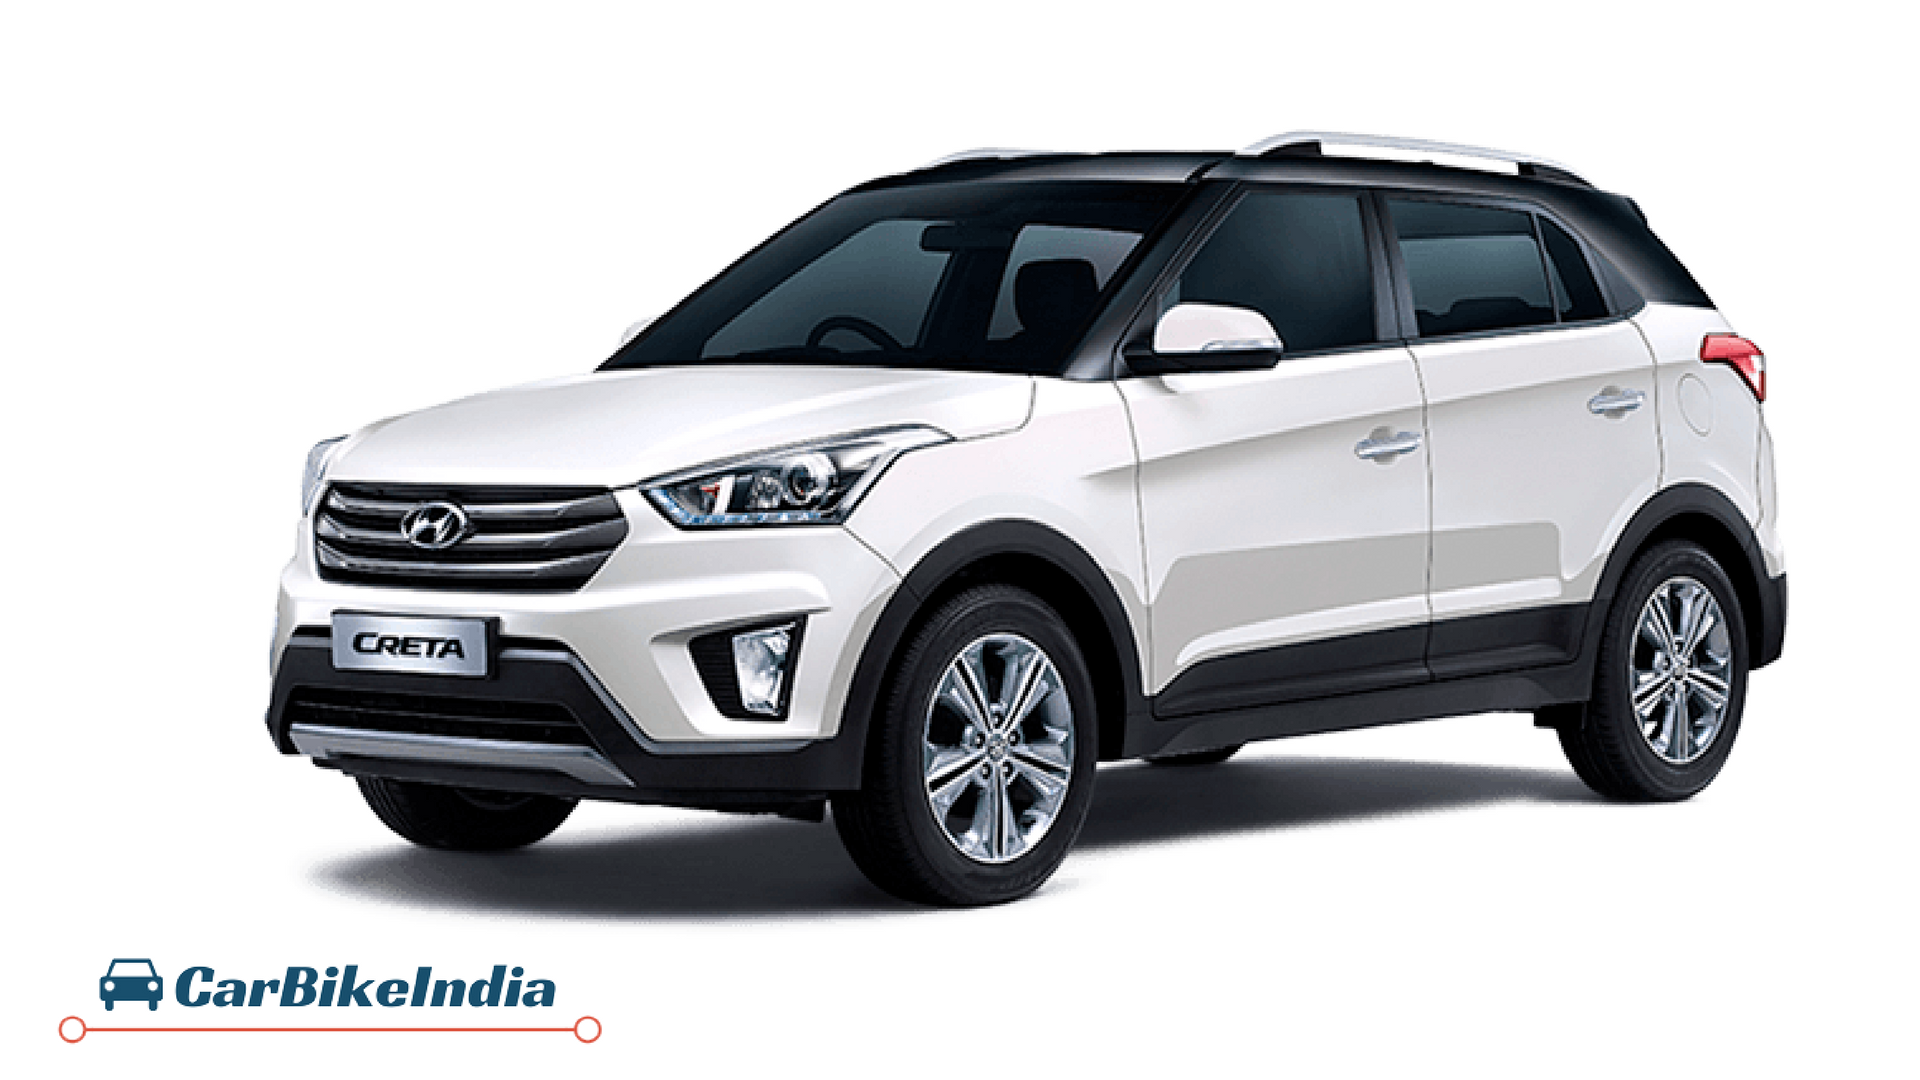 2020 Hyundai Creta Review Price Updated Interior Exterior Colors Hyundai Car Reviews